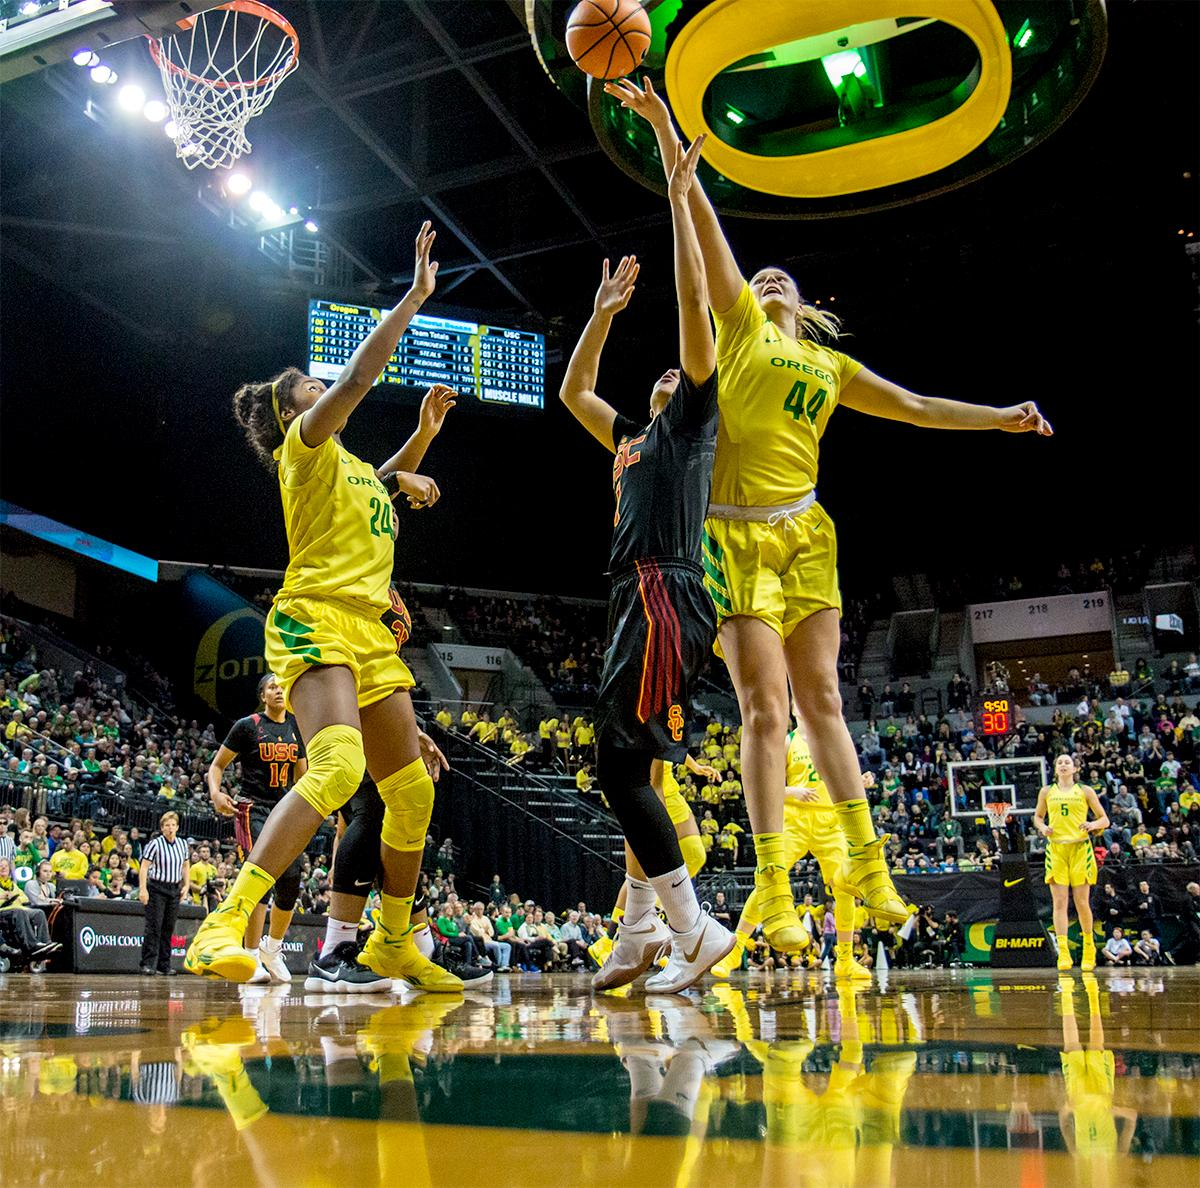 The Duck's Mallory McGwire (#44) jumps up to catch the rebound. The Oregon Ducks defeated the USC Trojans 80-74 on Friday at Matthew Knight Arena in a  game that went into double overtime. Lexi Bando sealed the Ducks victory by scoring a three-pointer in the closing of the game. Ruthy Hebard set a new NCAA record of 30 consecutive field goals, the old record being 28. Ruthy Hebard got a double-double with 27 points and 10 rebounds, Mallory McGwire also had 10 rebounds. The ducks had four players in double digits. The Ducks are now 24-4, 13-2 in the Pac-12, and are tied for first with Stanford. Photo by August Frank, Oregon News Lab